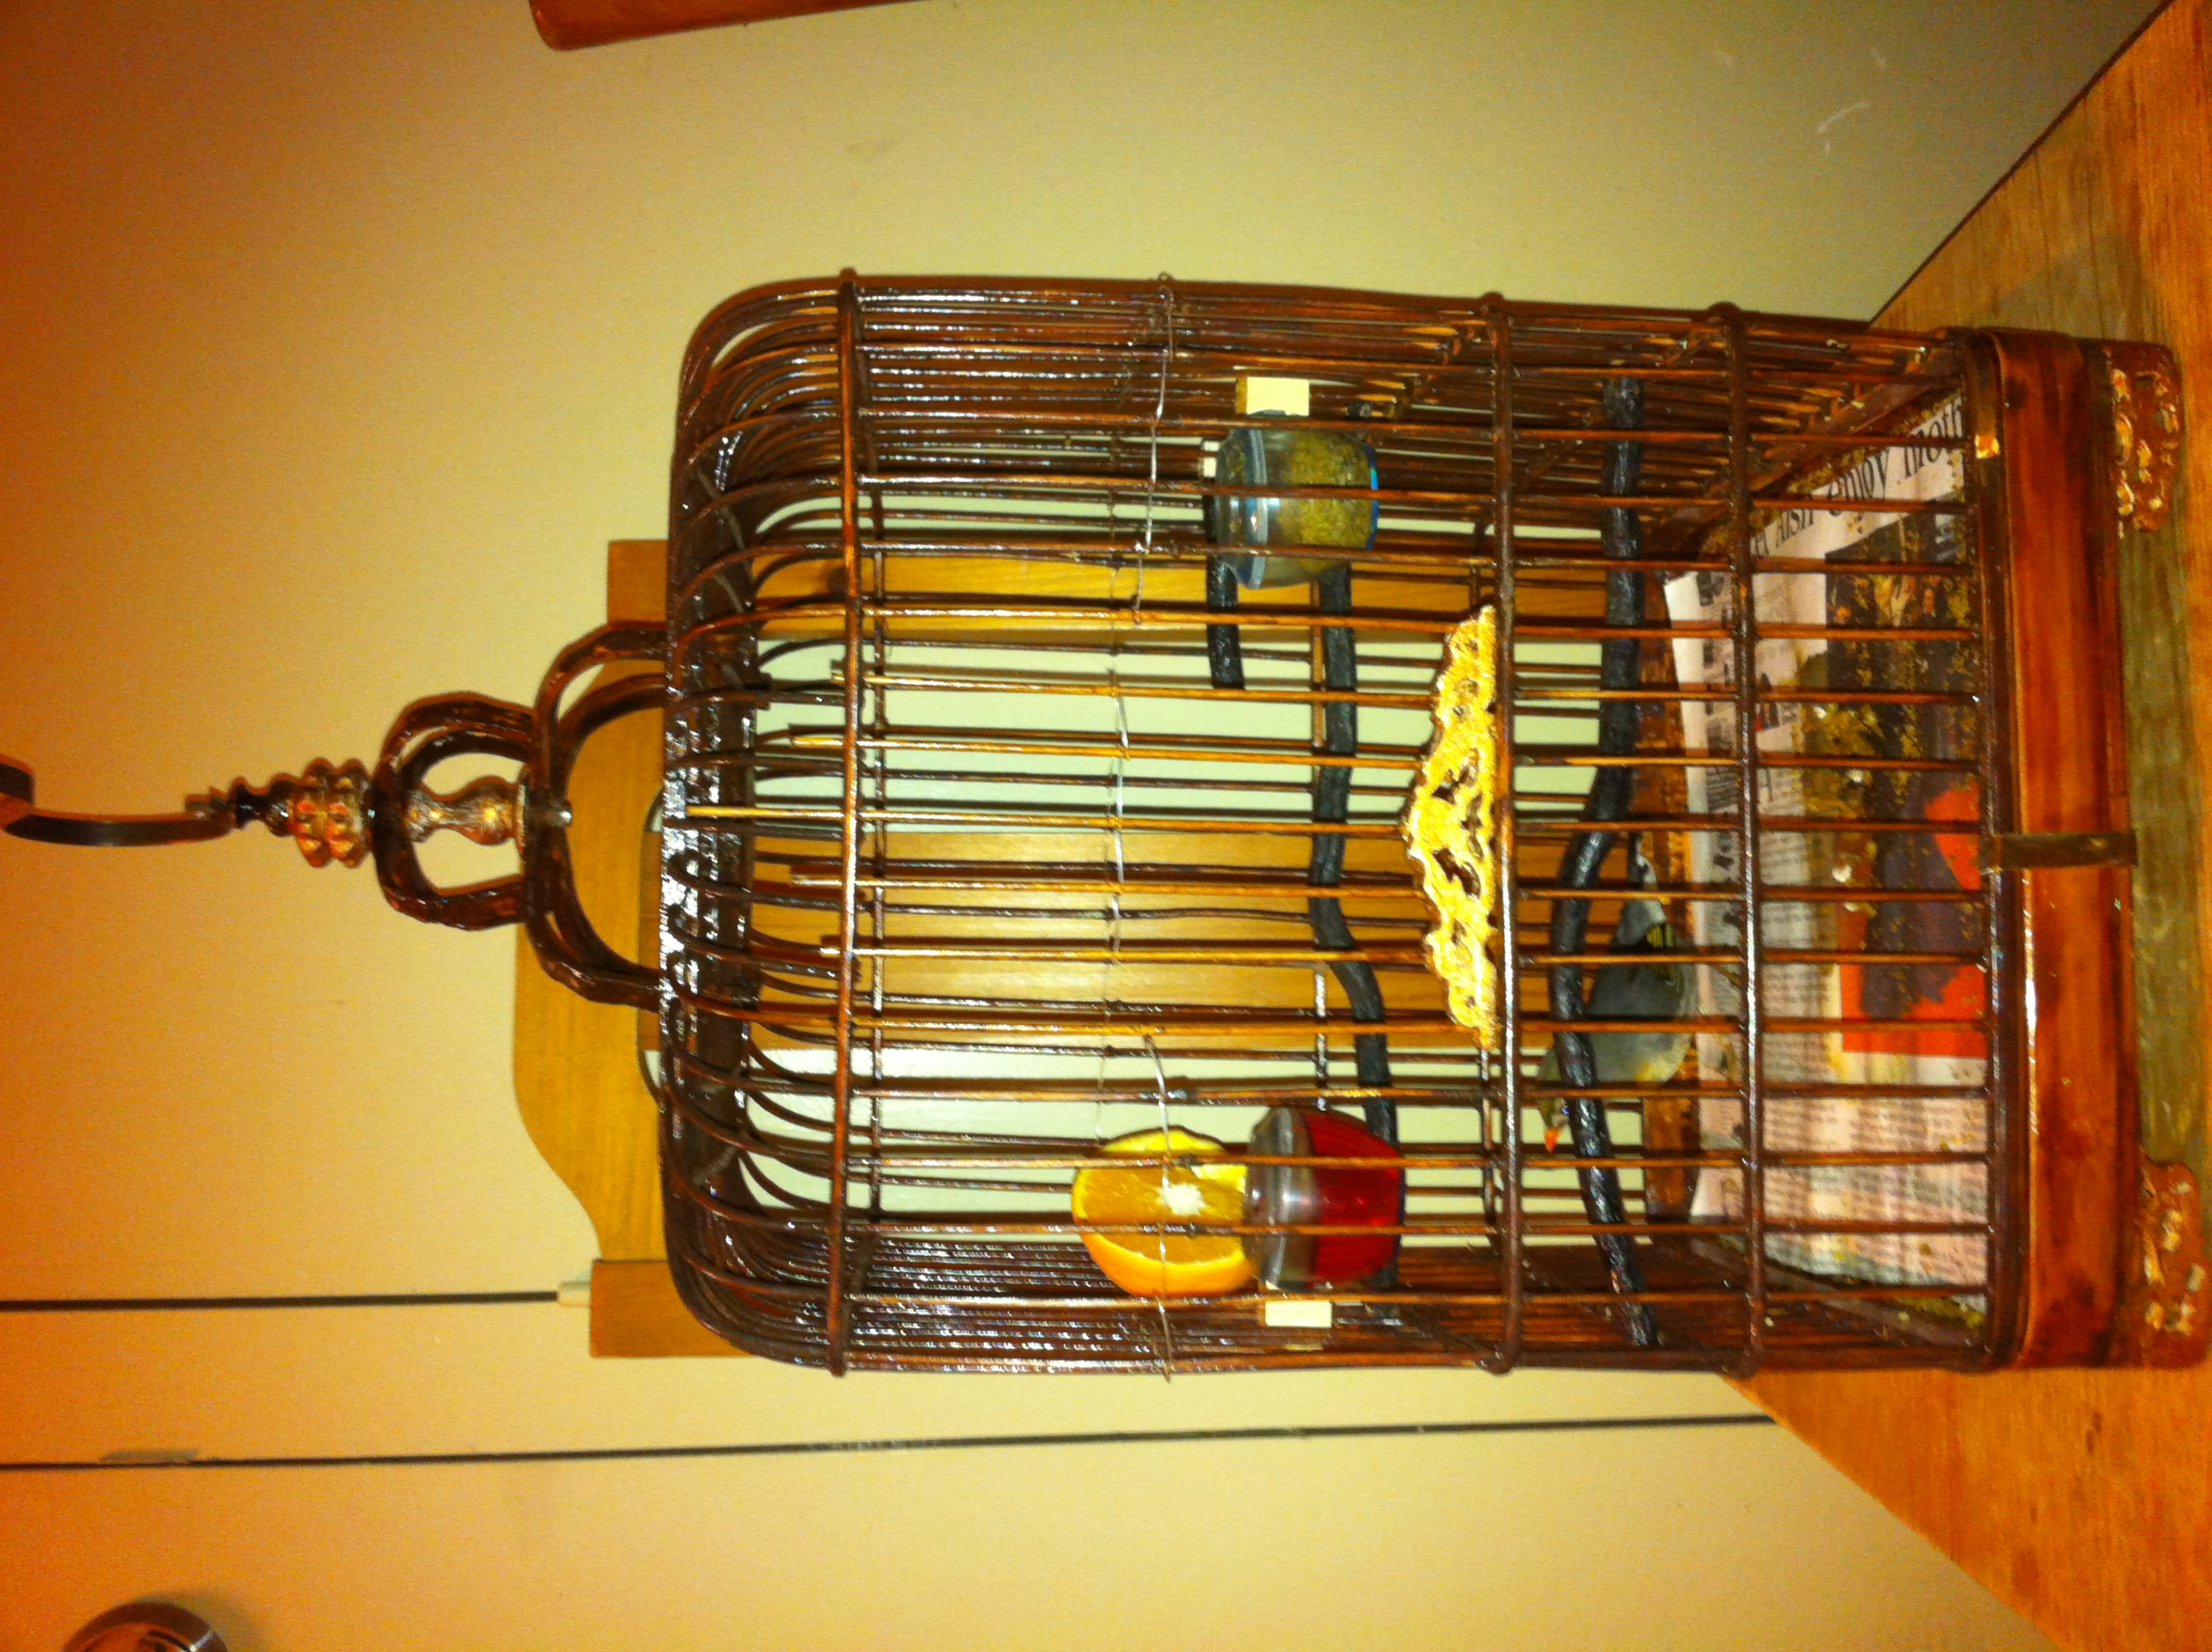 FOR SALE / ADOPTION: Male and Female Canary for sale